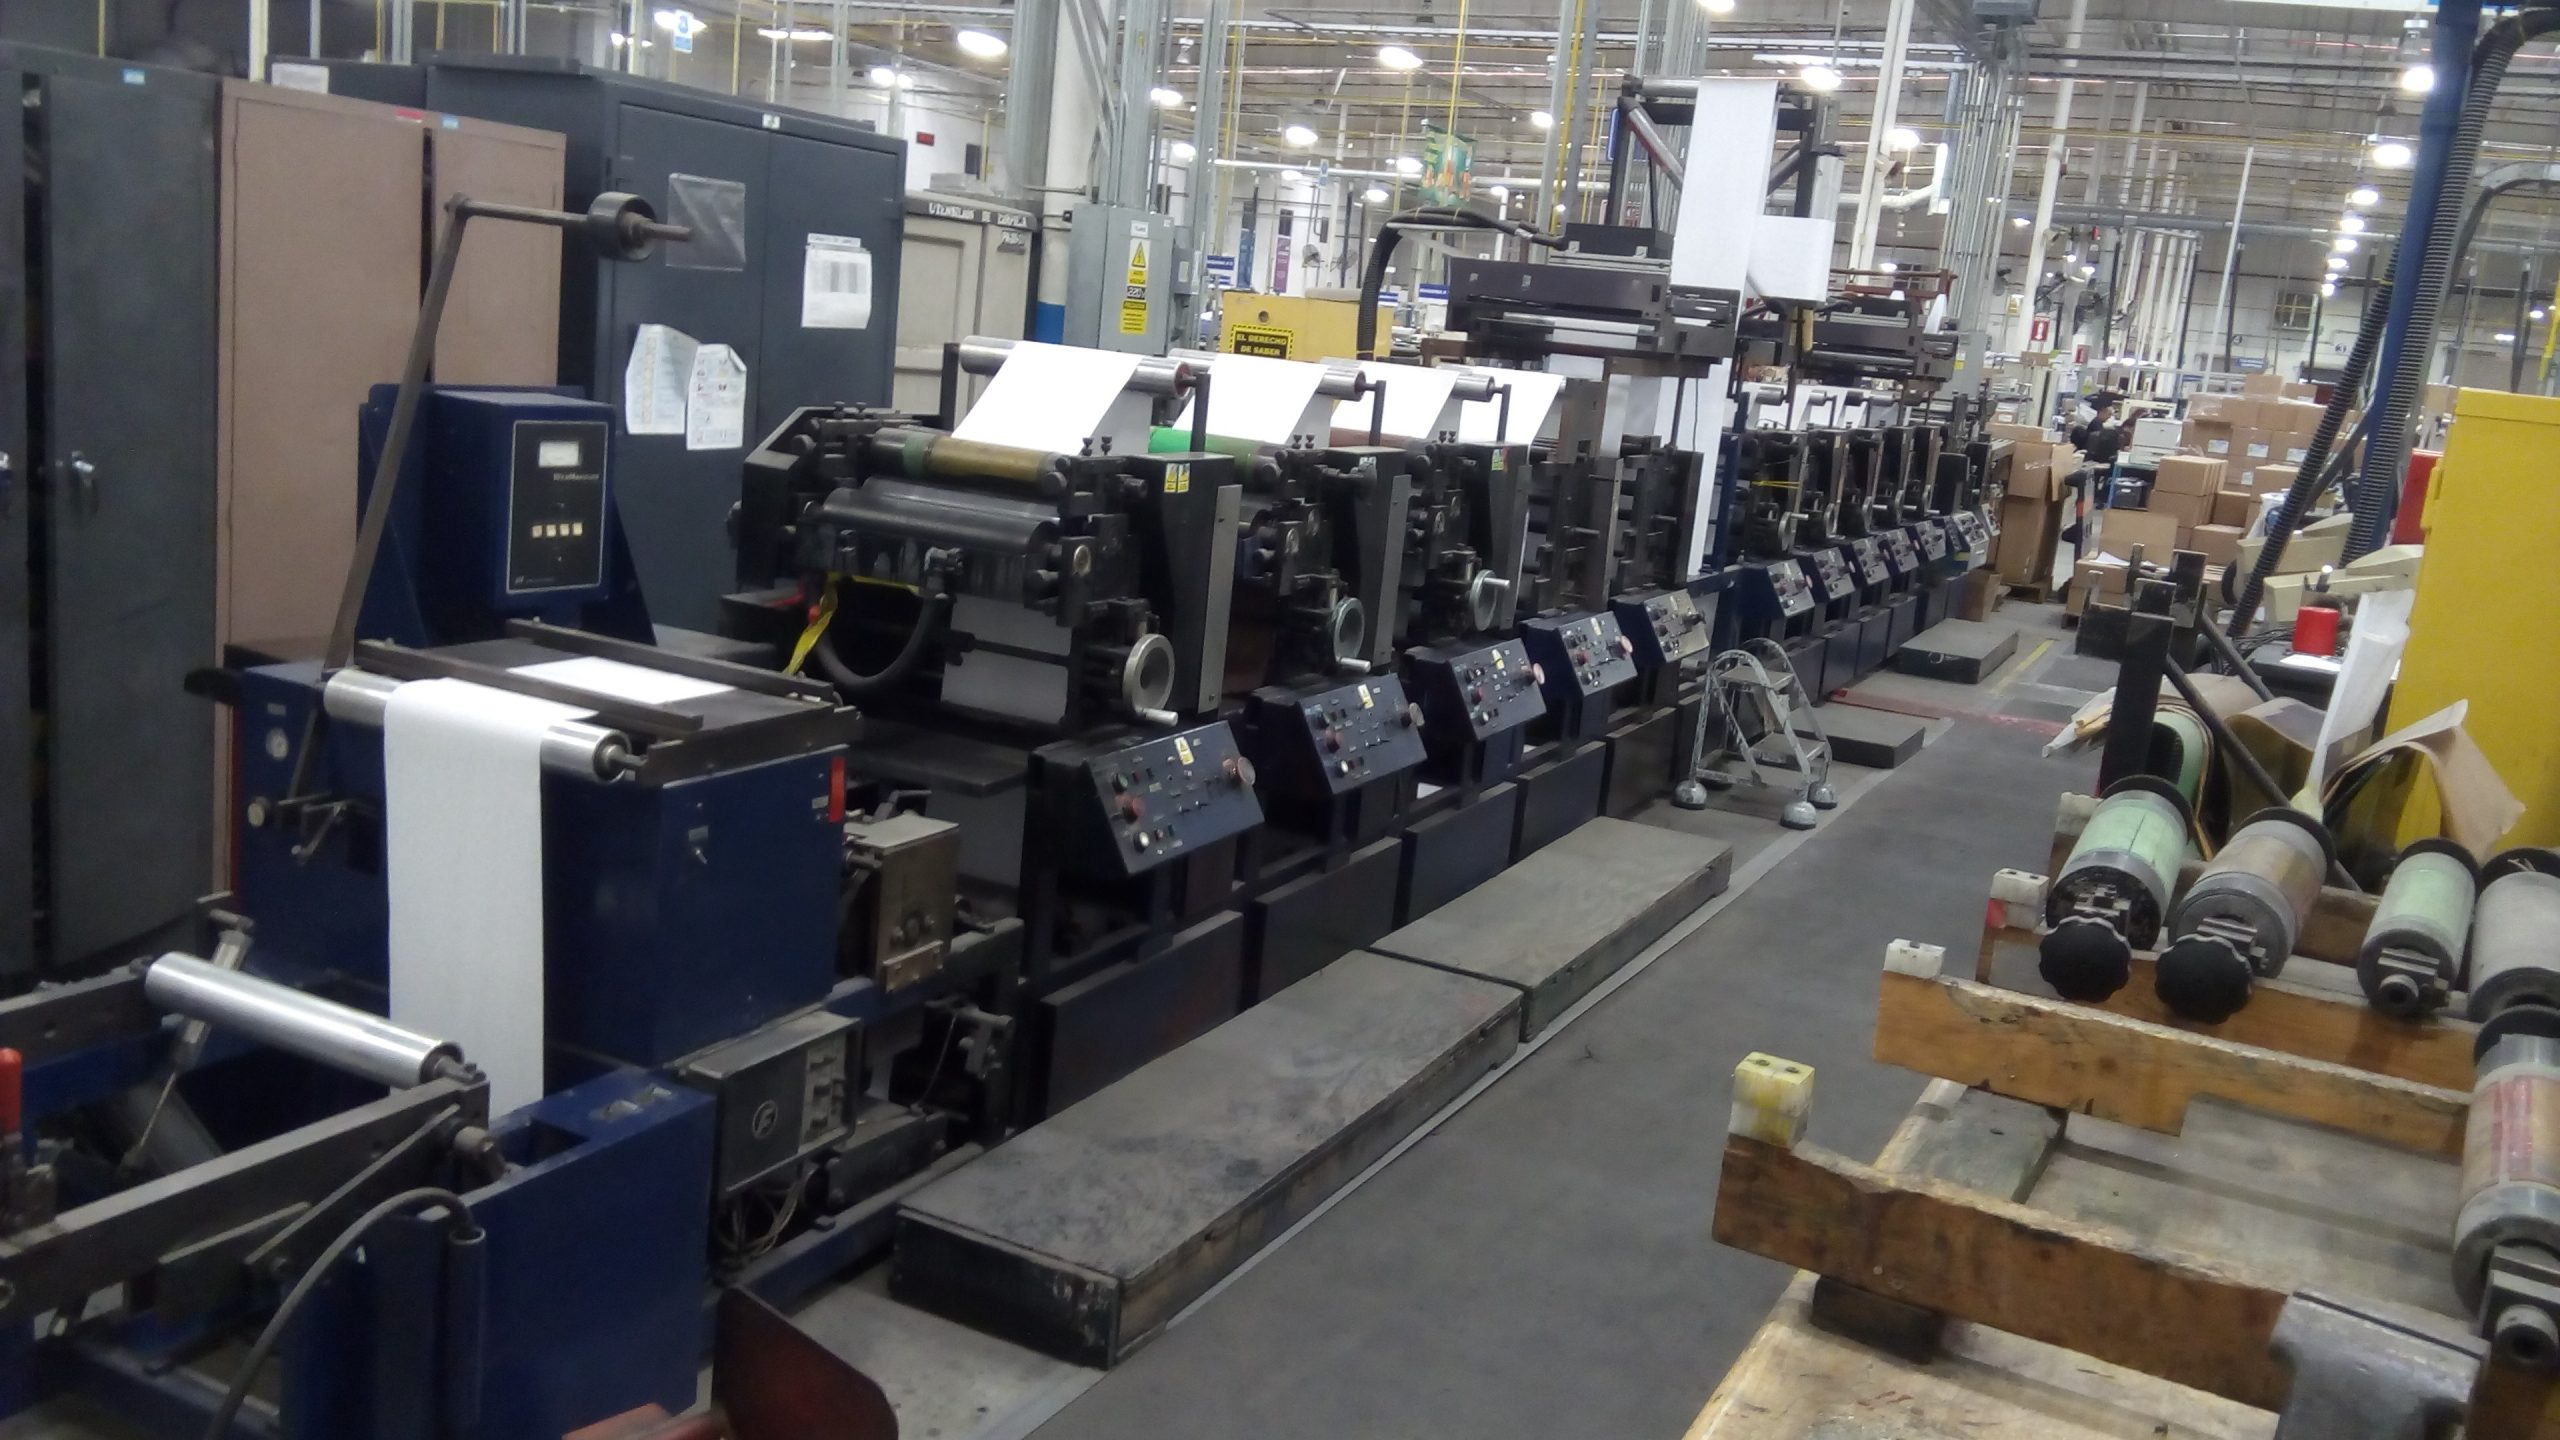 Propheteer 1800 - Used Flexo Printing Presses and Used Flexographic Equipment-0